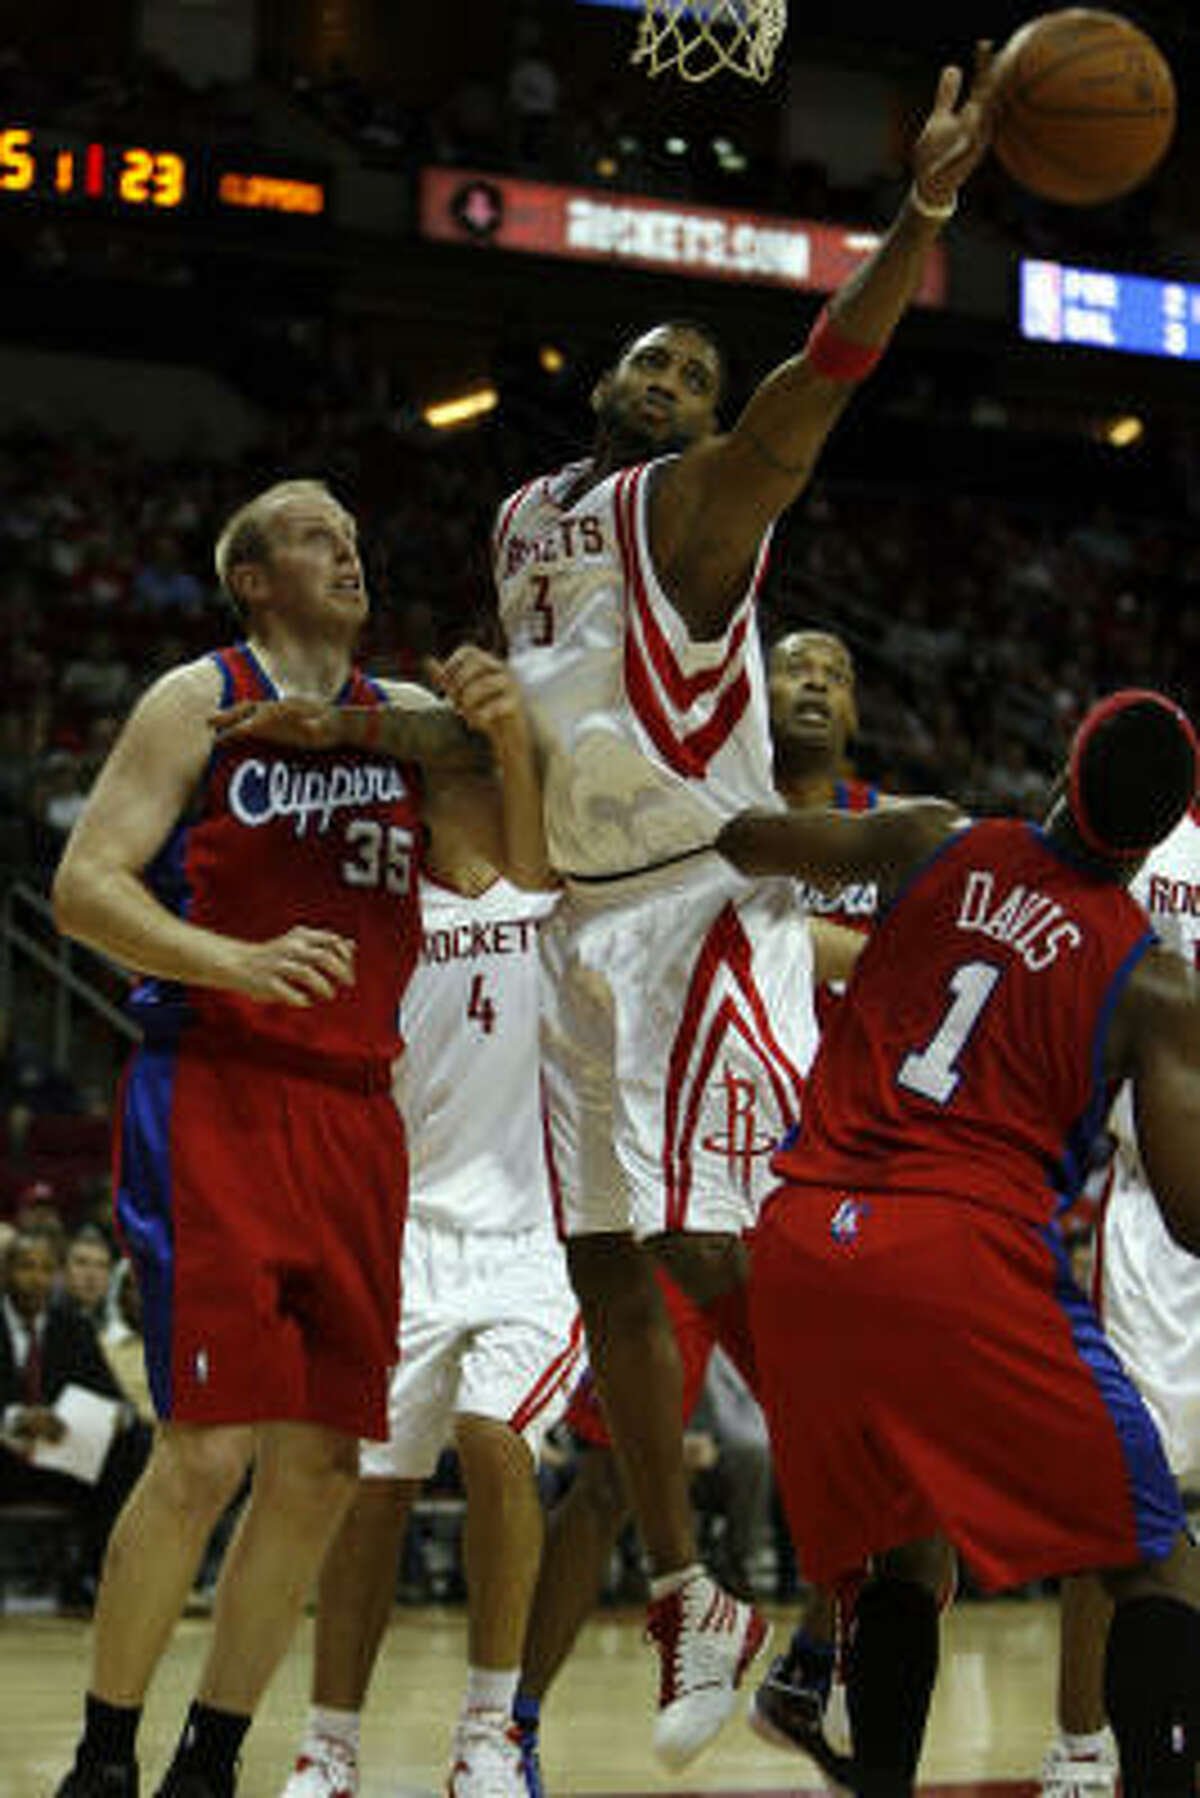 Tracy McGrady had one of his best performances of the season Tuesday against the Clippers.